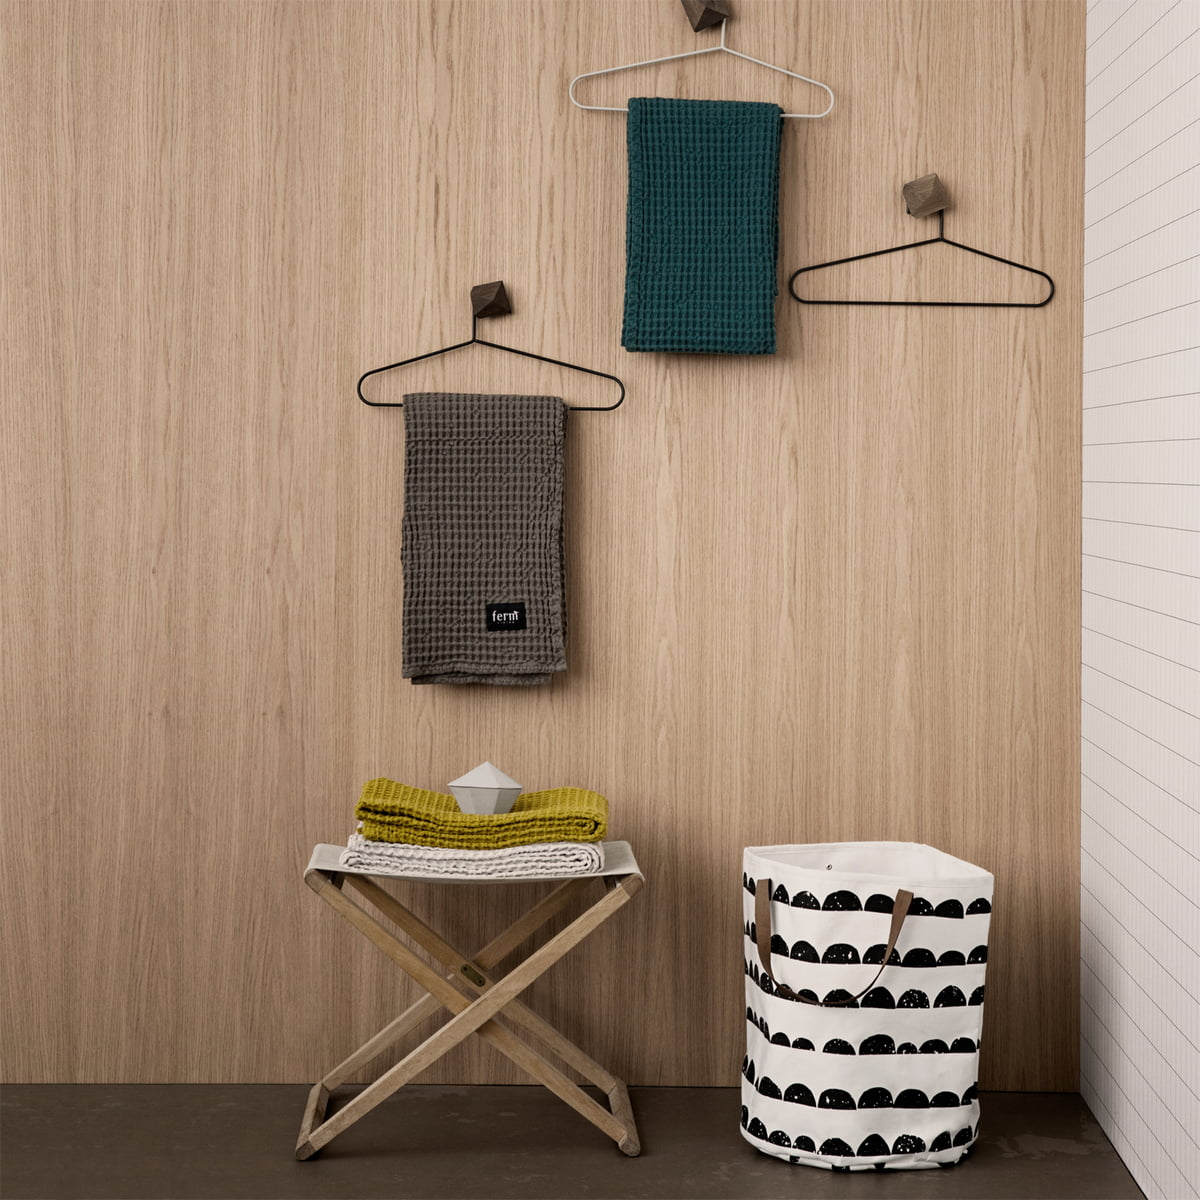 Charmant Organic Bath Towels And Half Moon Laundry Basket By Ferm Living